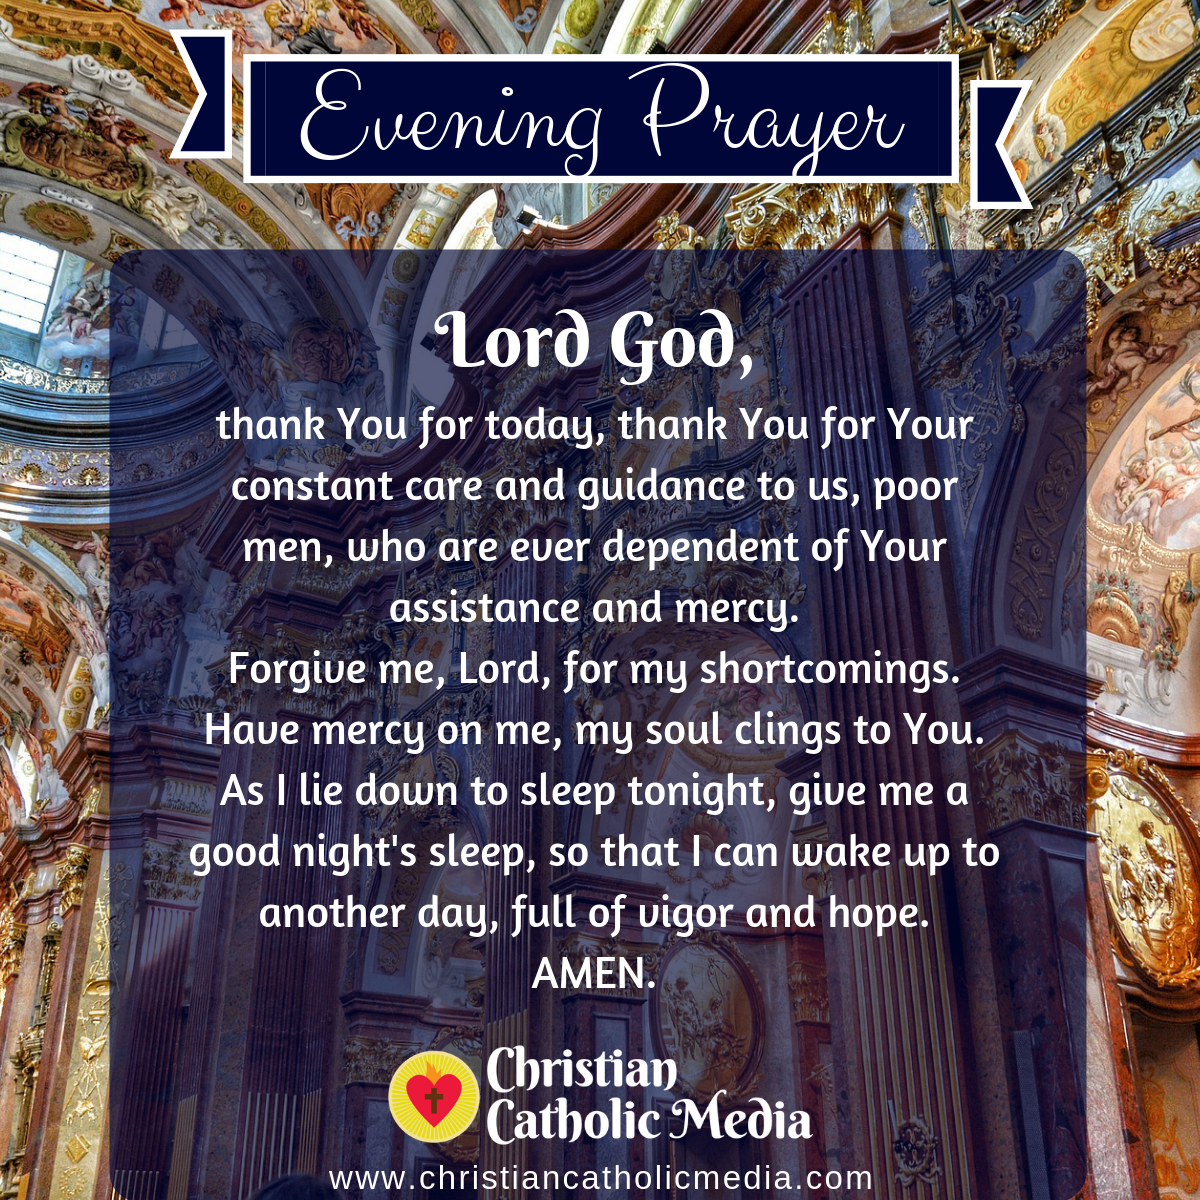 Evening Prayer Catholic Monday 1-6-2020